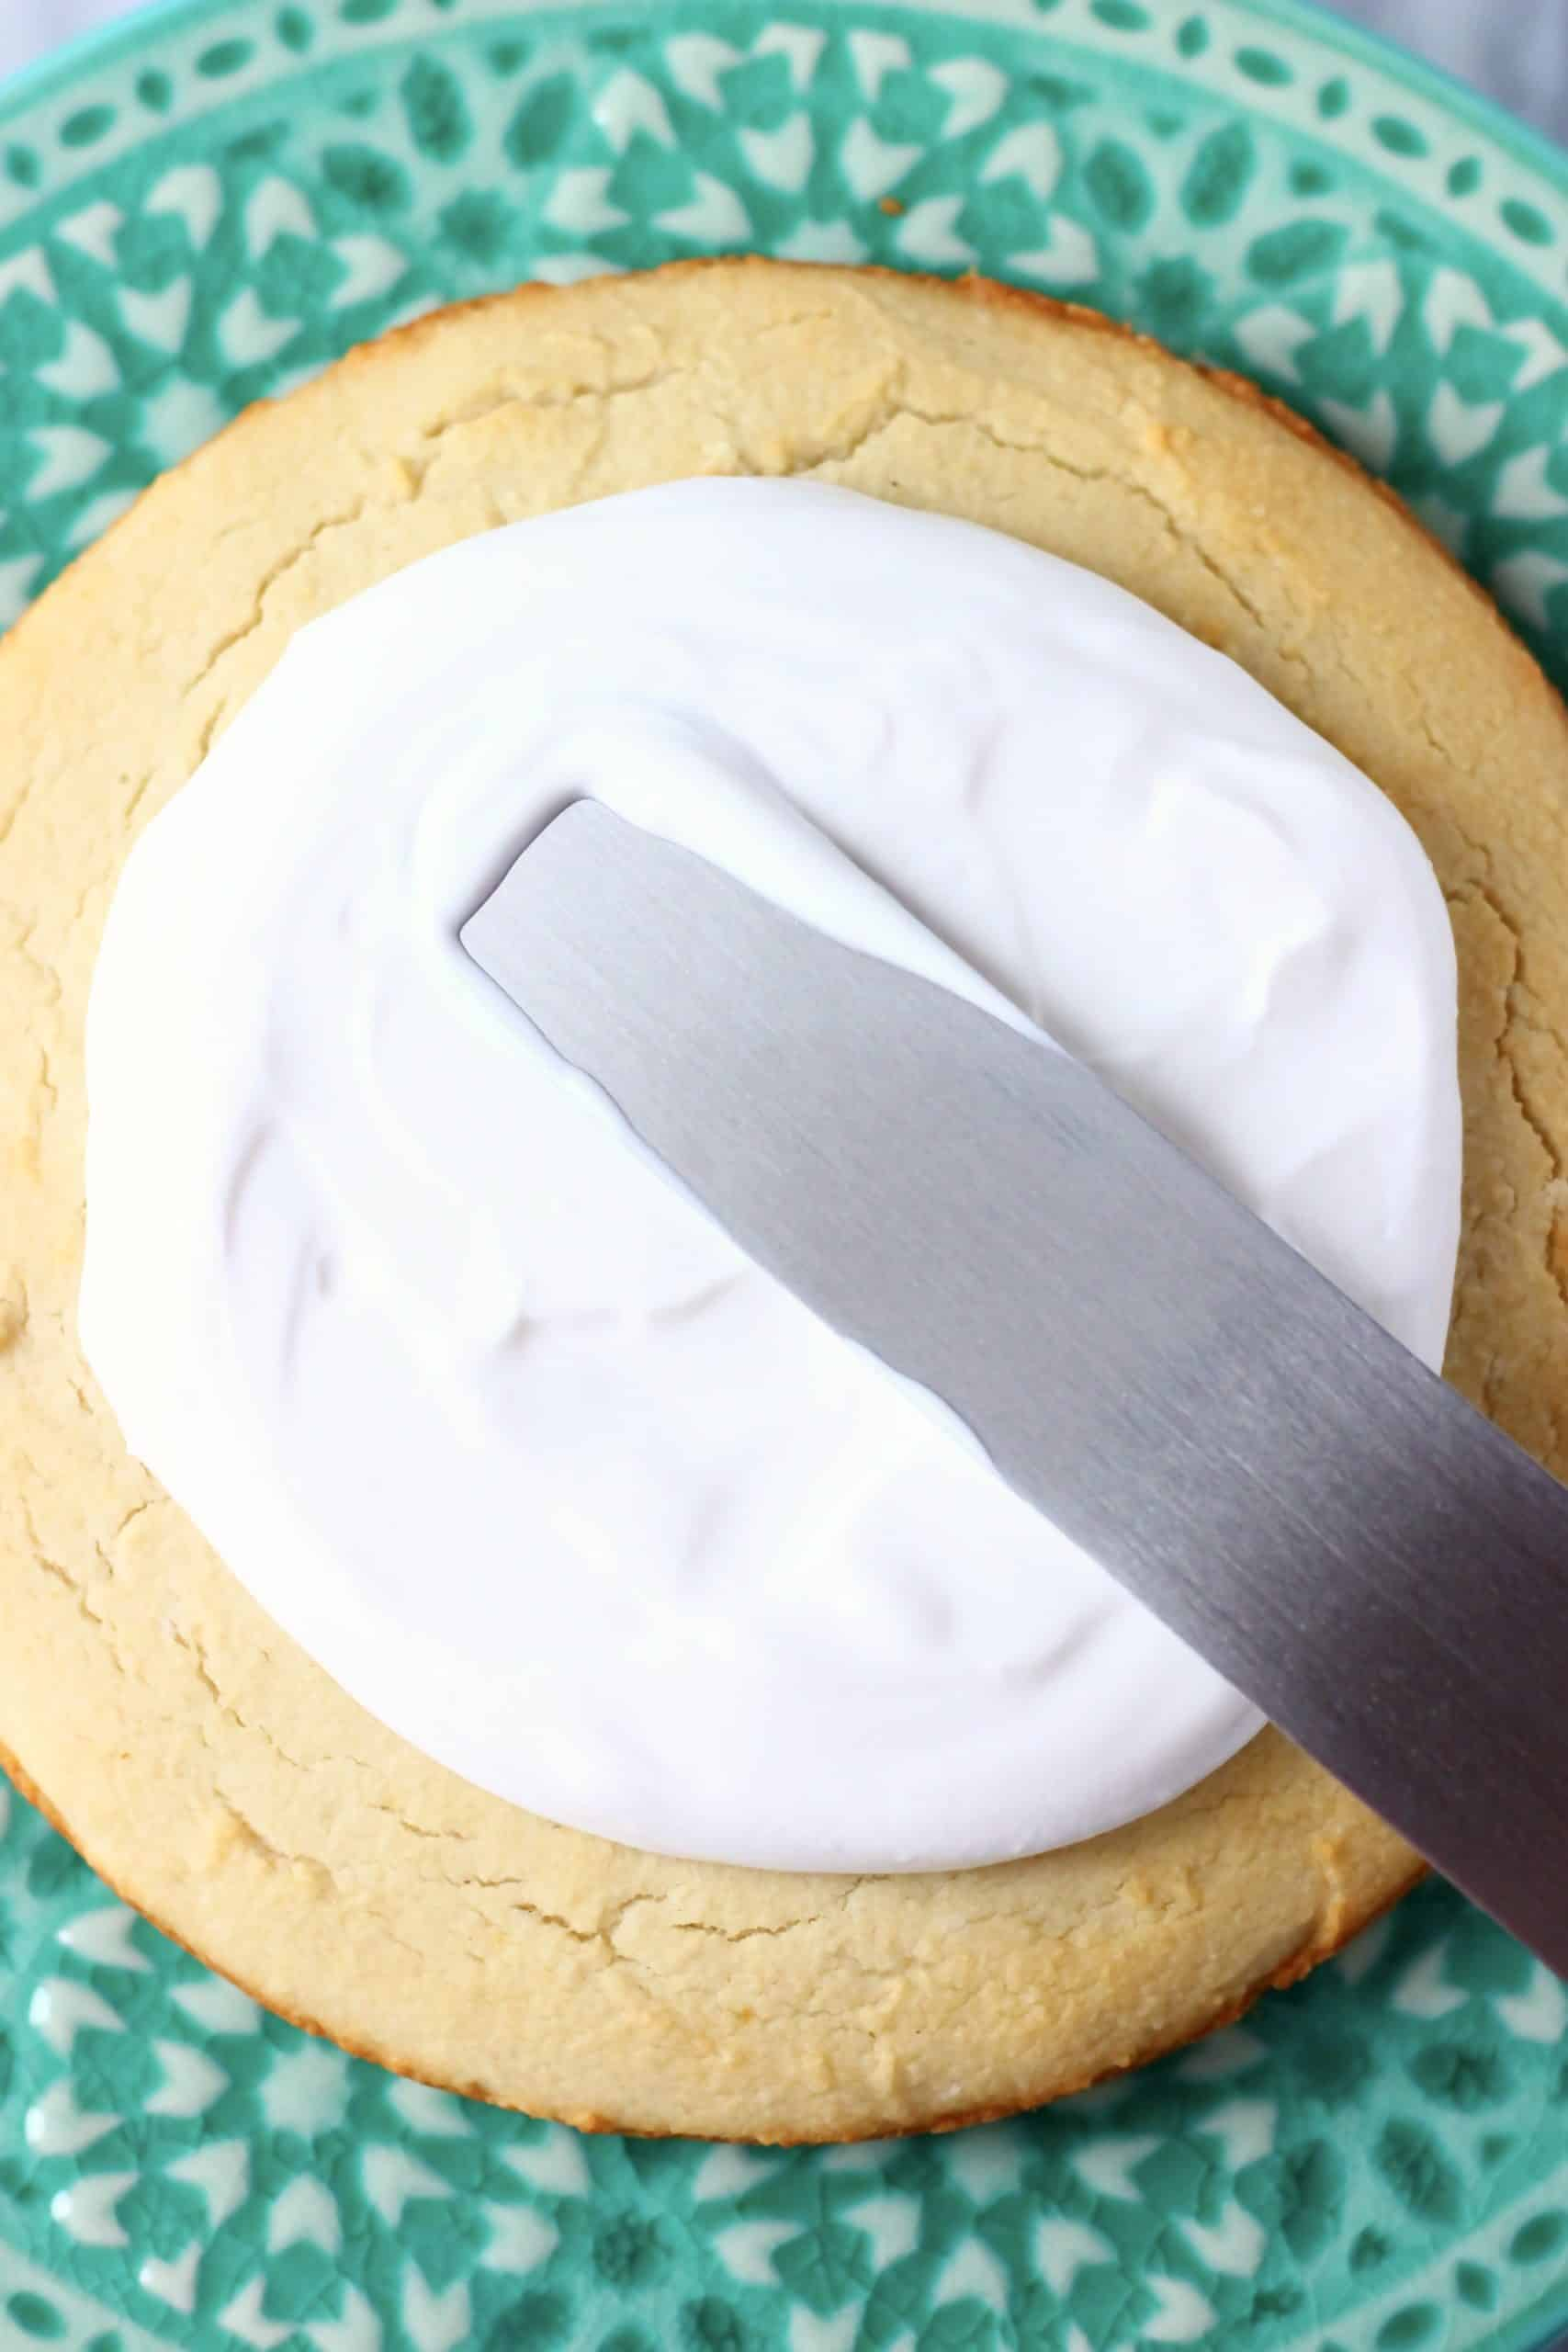 A gluten-free vegan coconut cake sponge on a cake stand being spread with coconut cream frosting with a palette knife